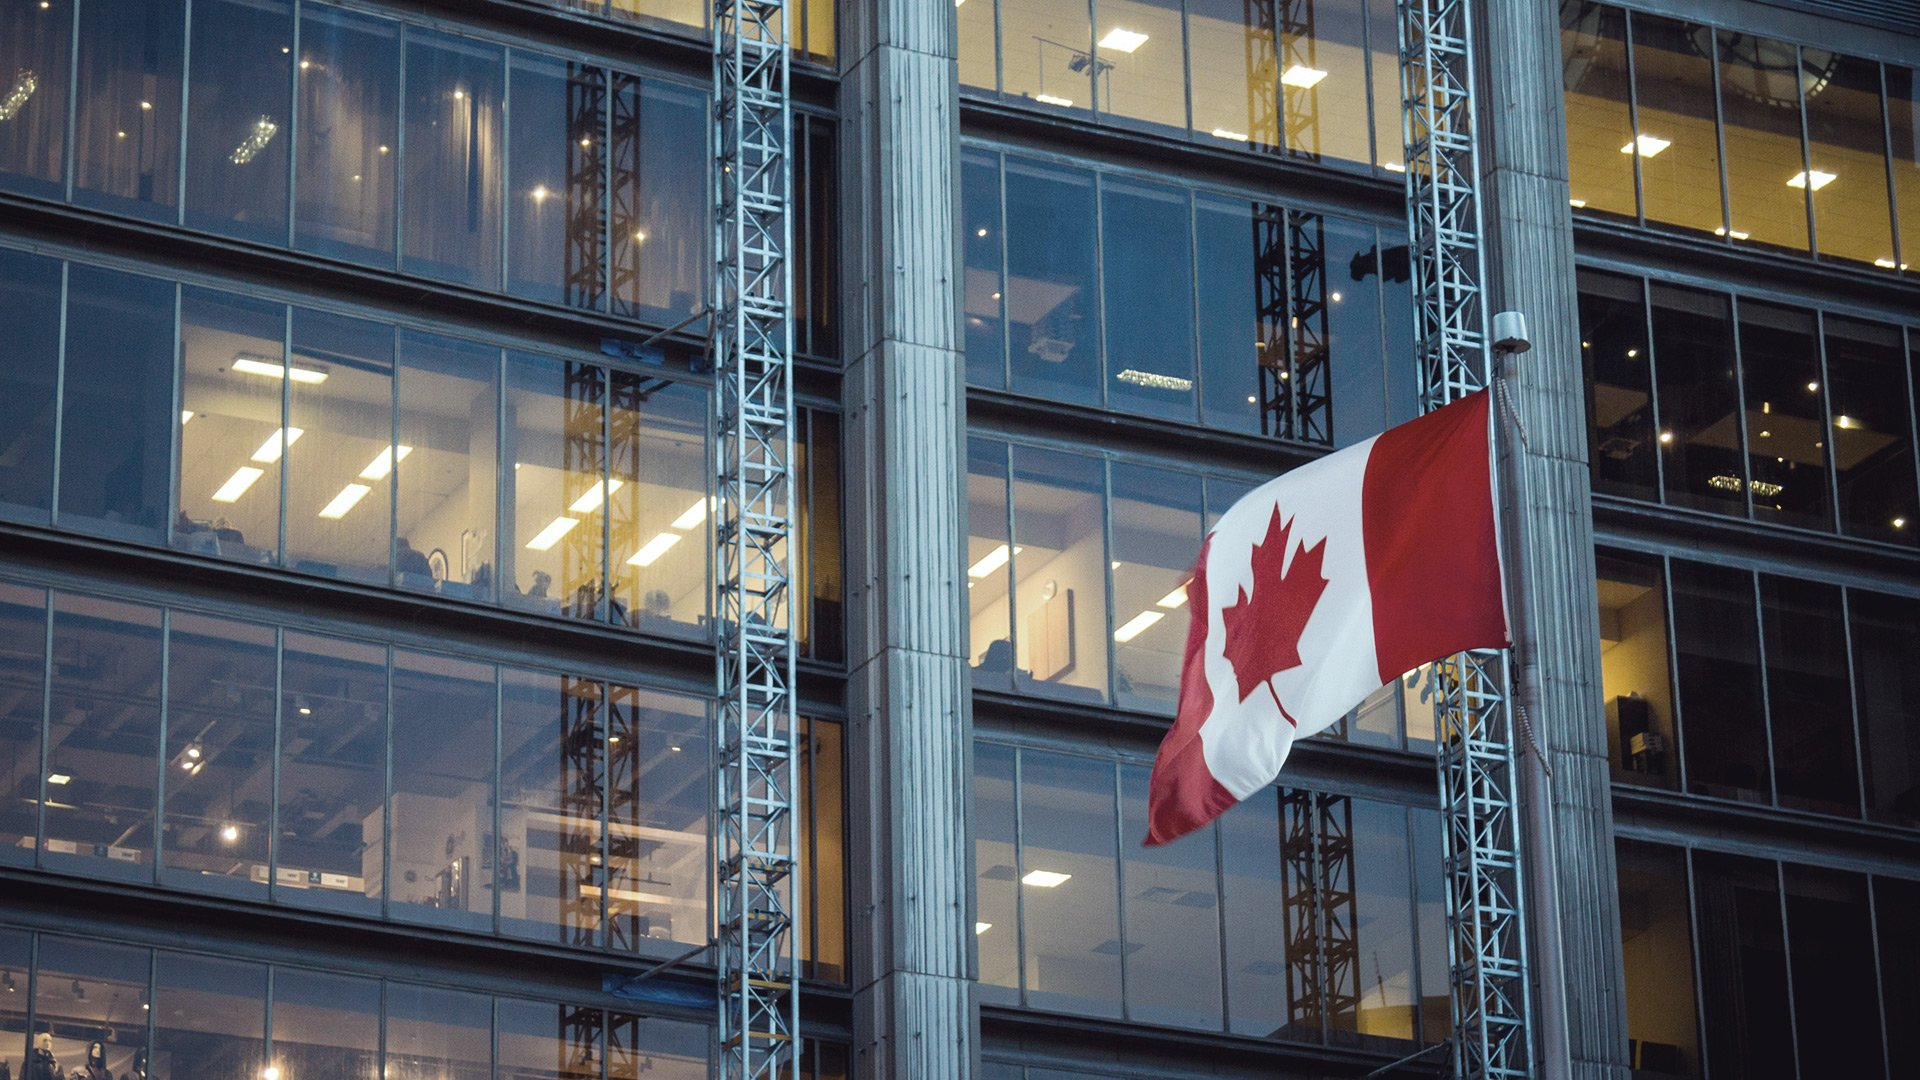 With Poloniex action, Canada's securities regulators get serious about crypto exchange oversight